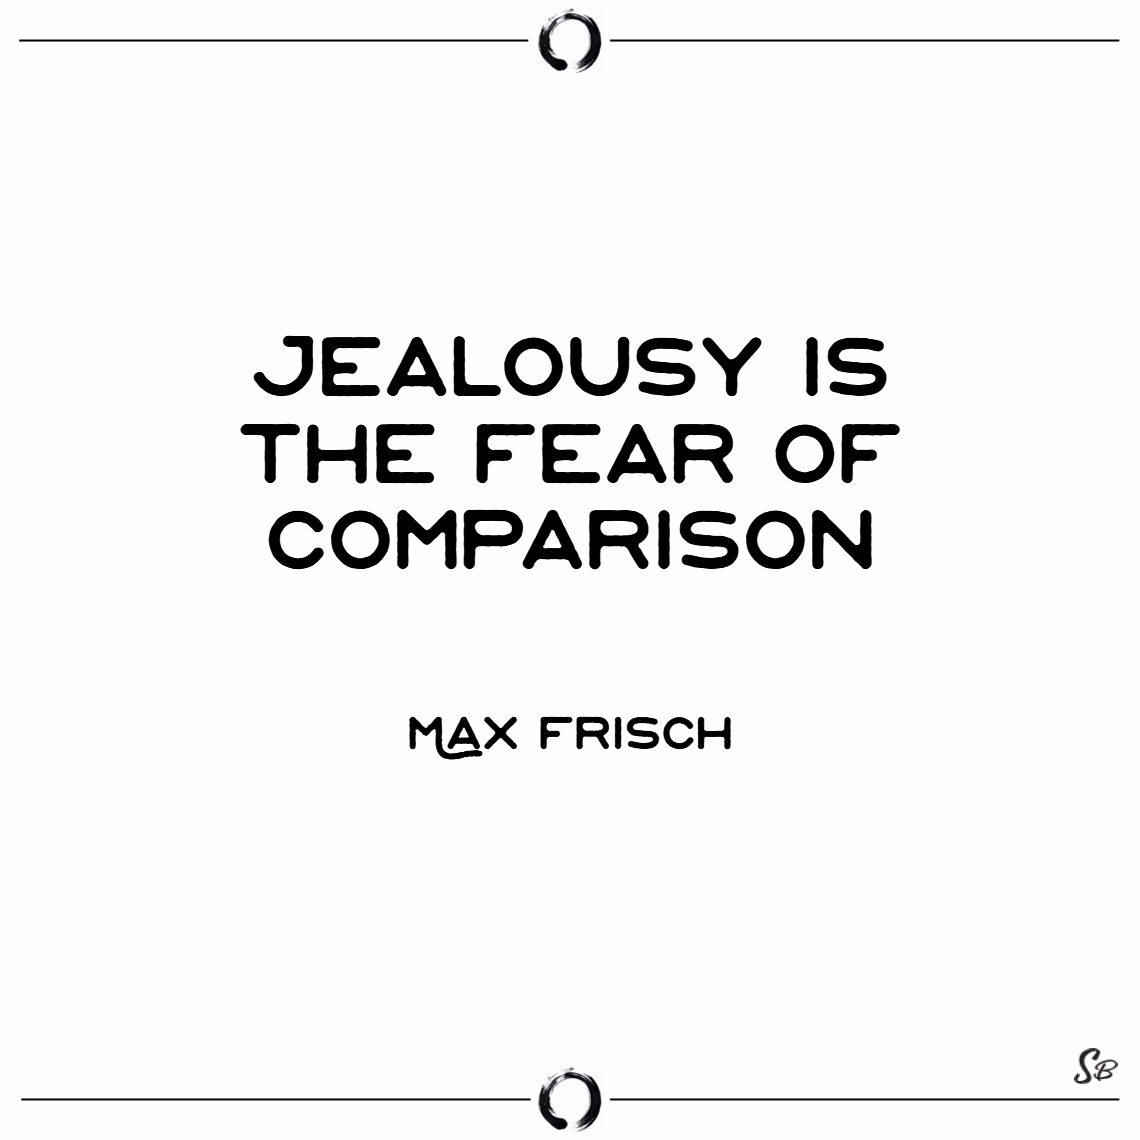 Jealousy is the fear of comparison. – max frisch